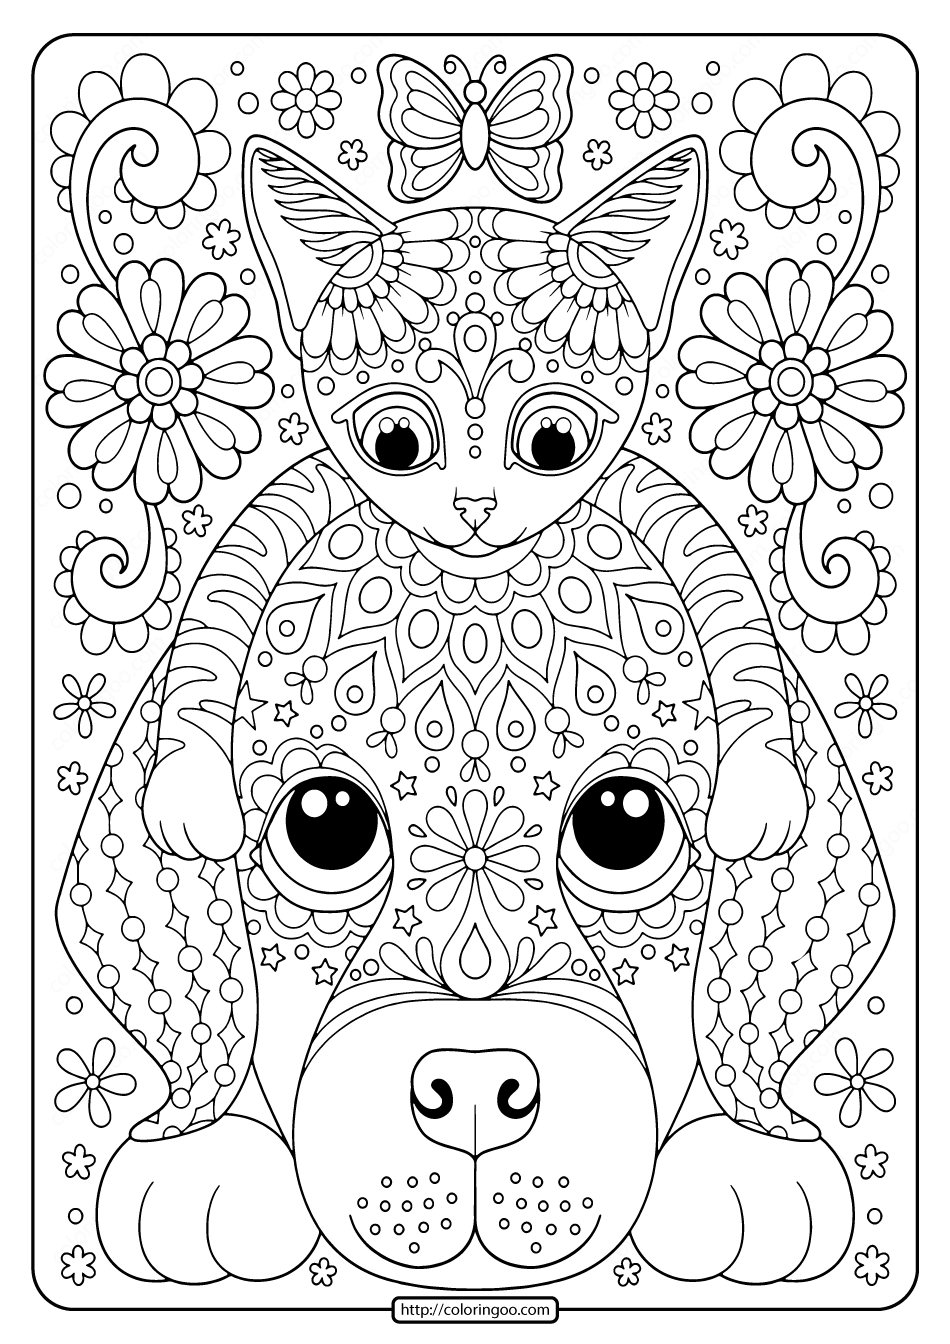 Free Printable Cat and Dog Coloring Pages